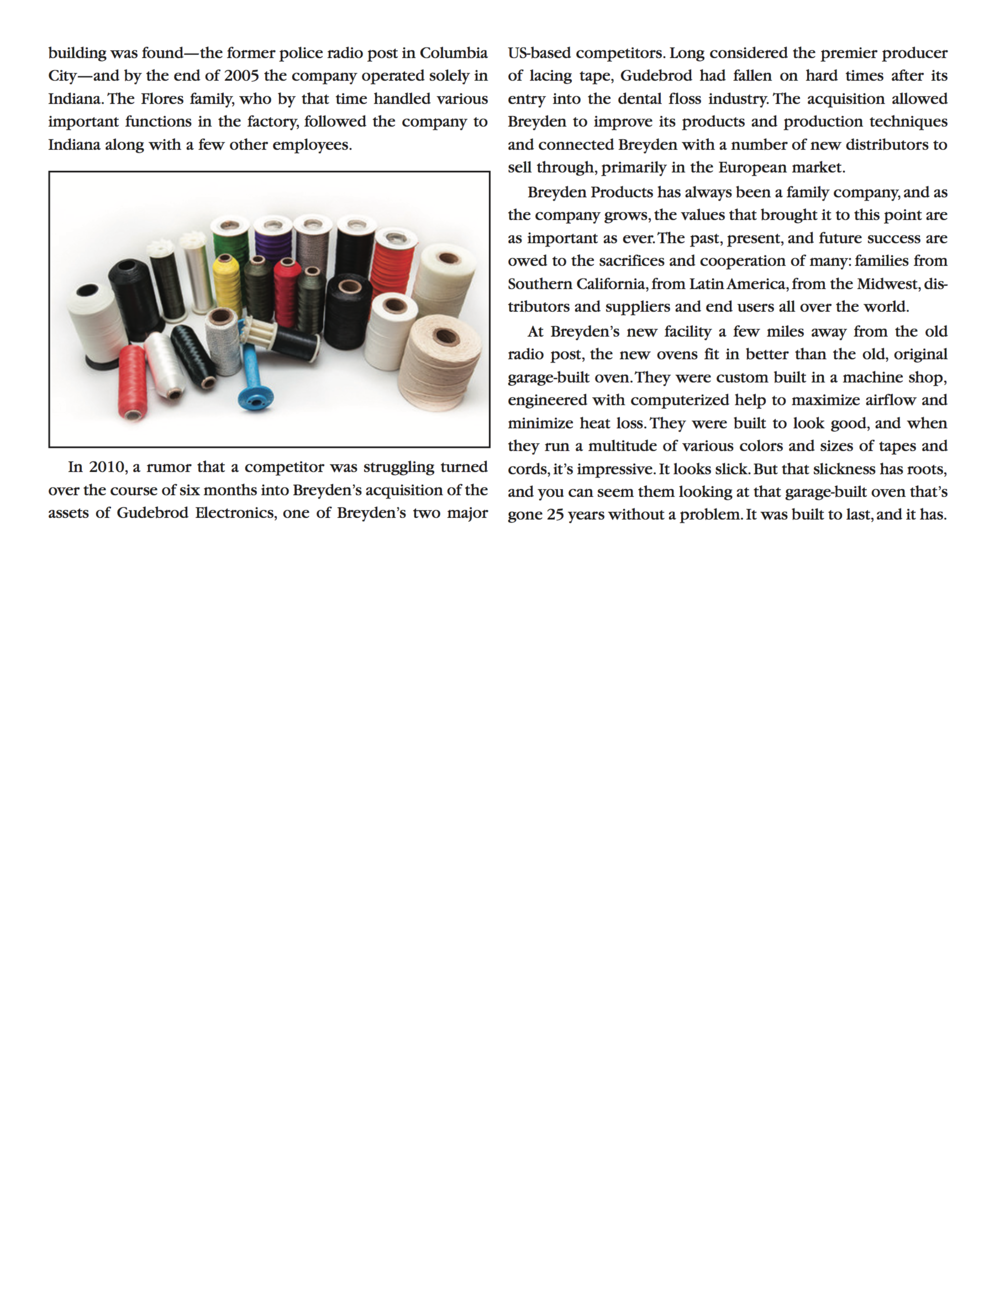 25 Years of Quality Lacing Tapes Article Continued